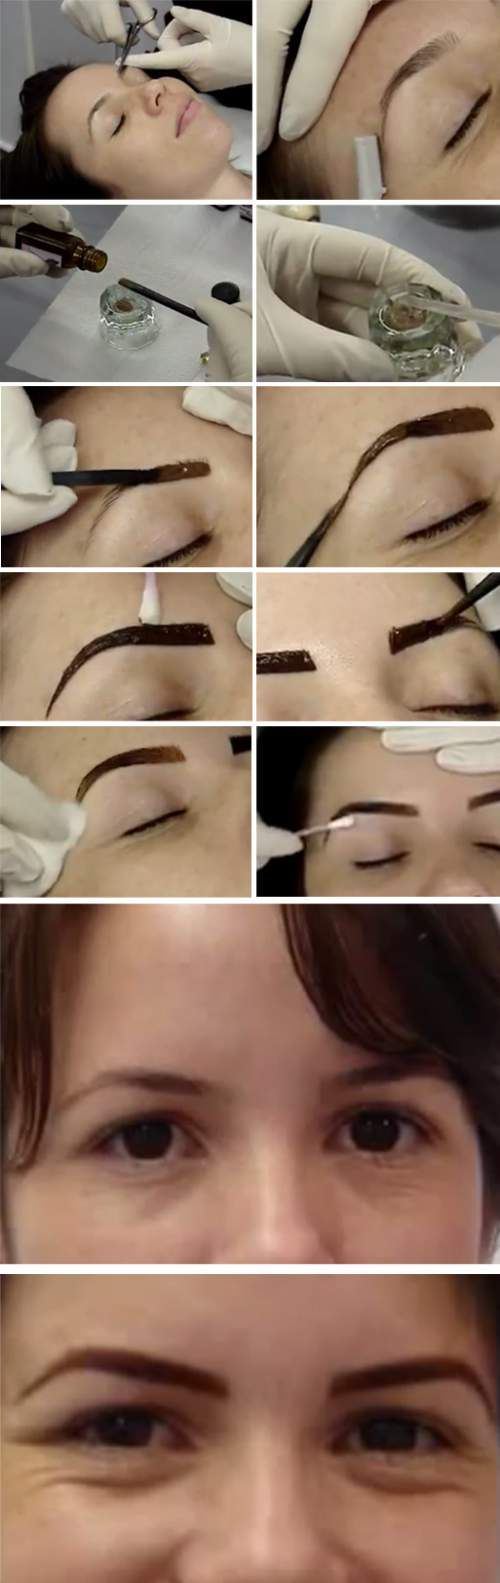 How to Dye Your Eyebrows Naturally